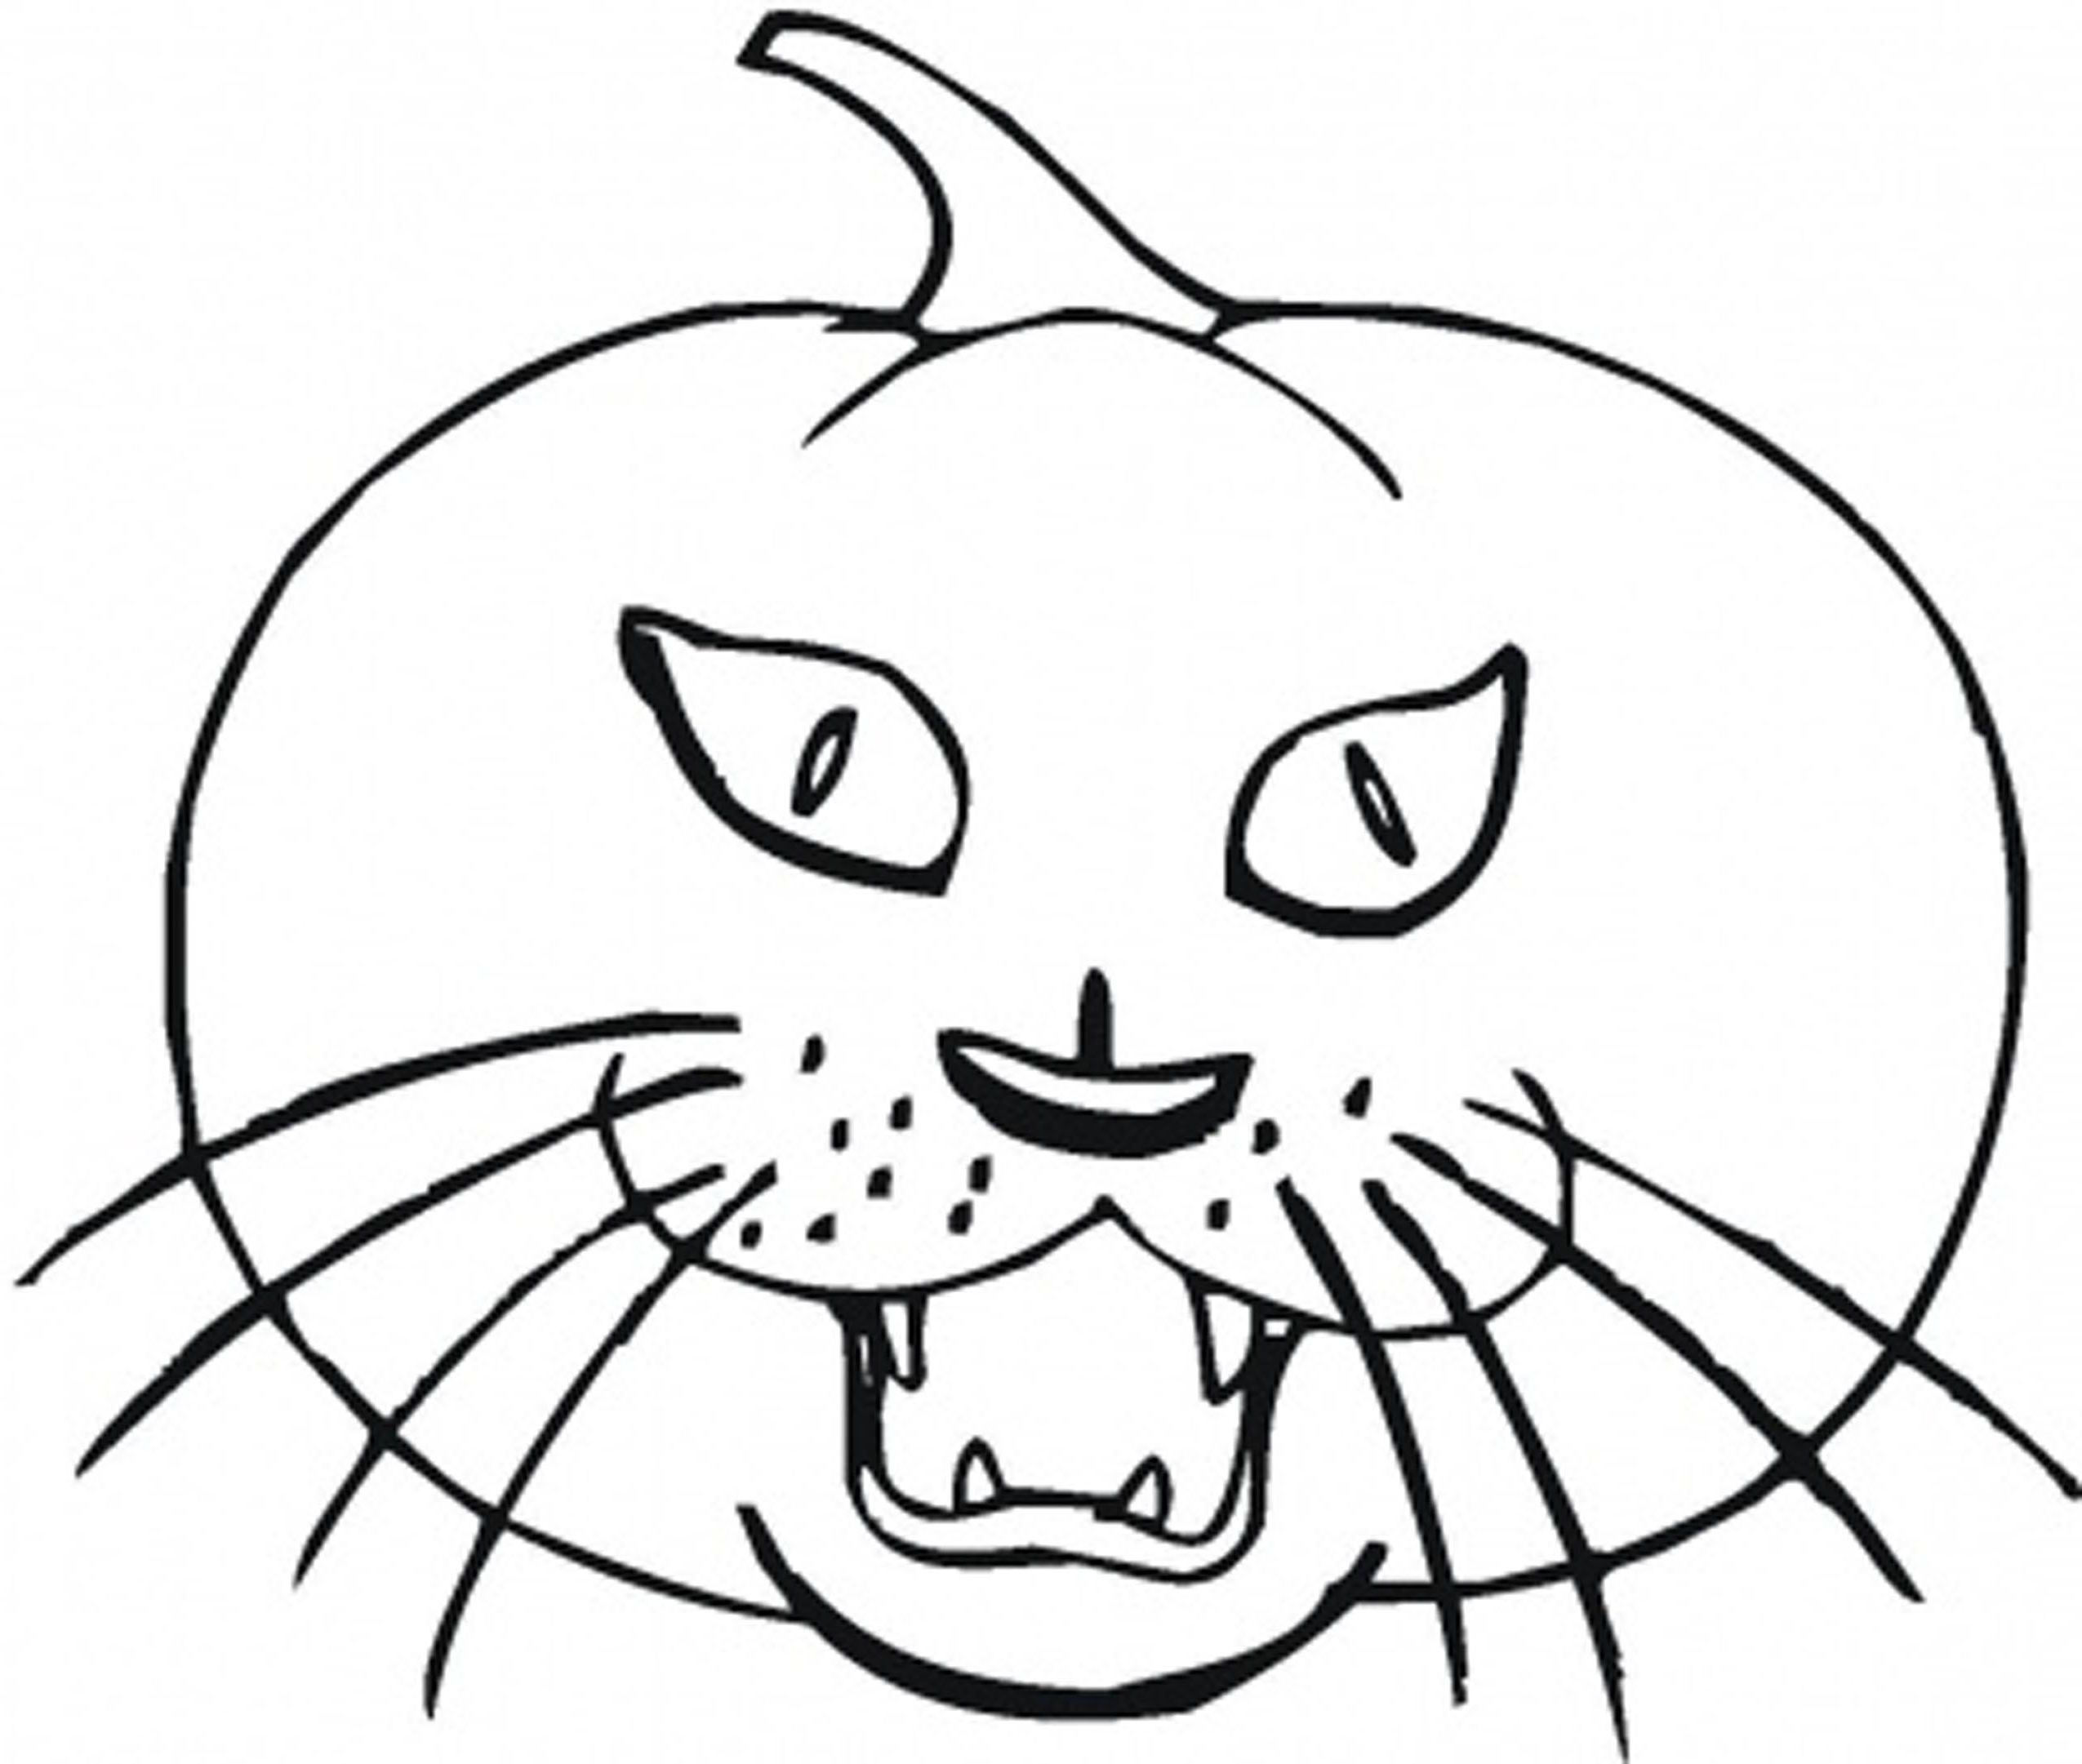 Black Cat For Halloween Coloring Pages To Print Coloring